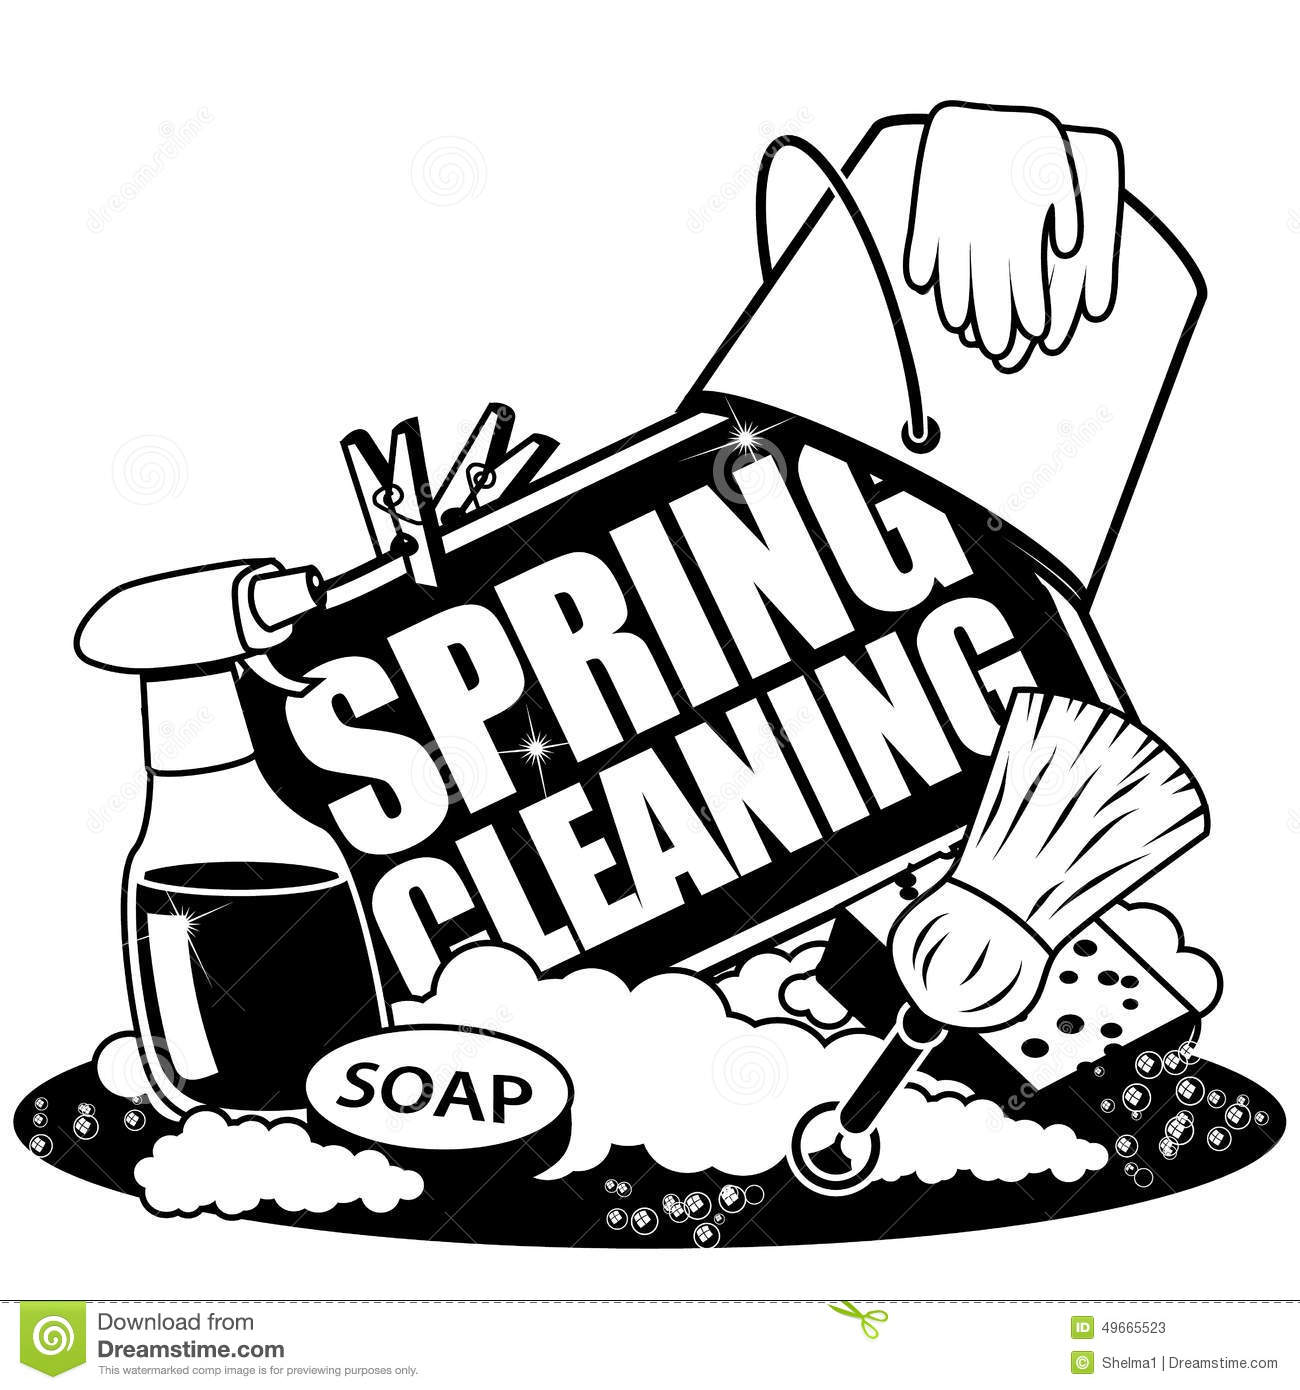 clip art illustrations cleaning - photo #12